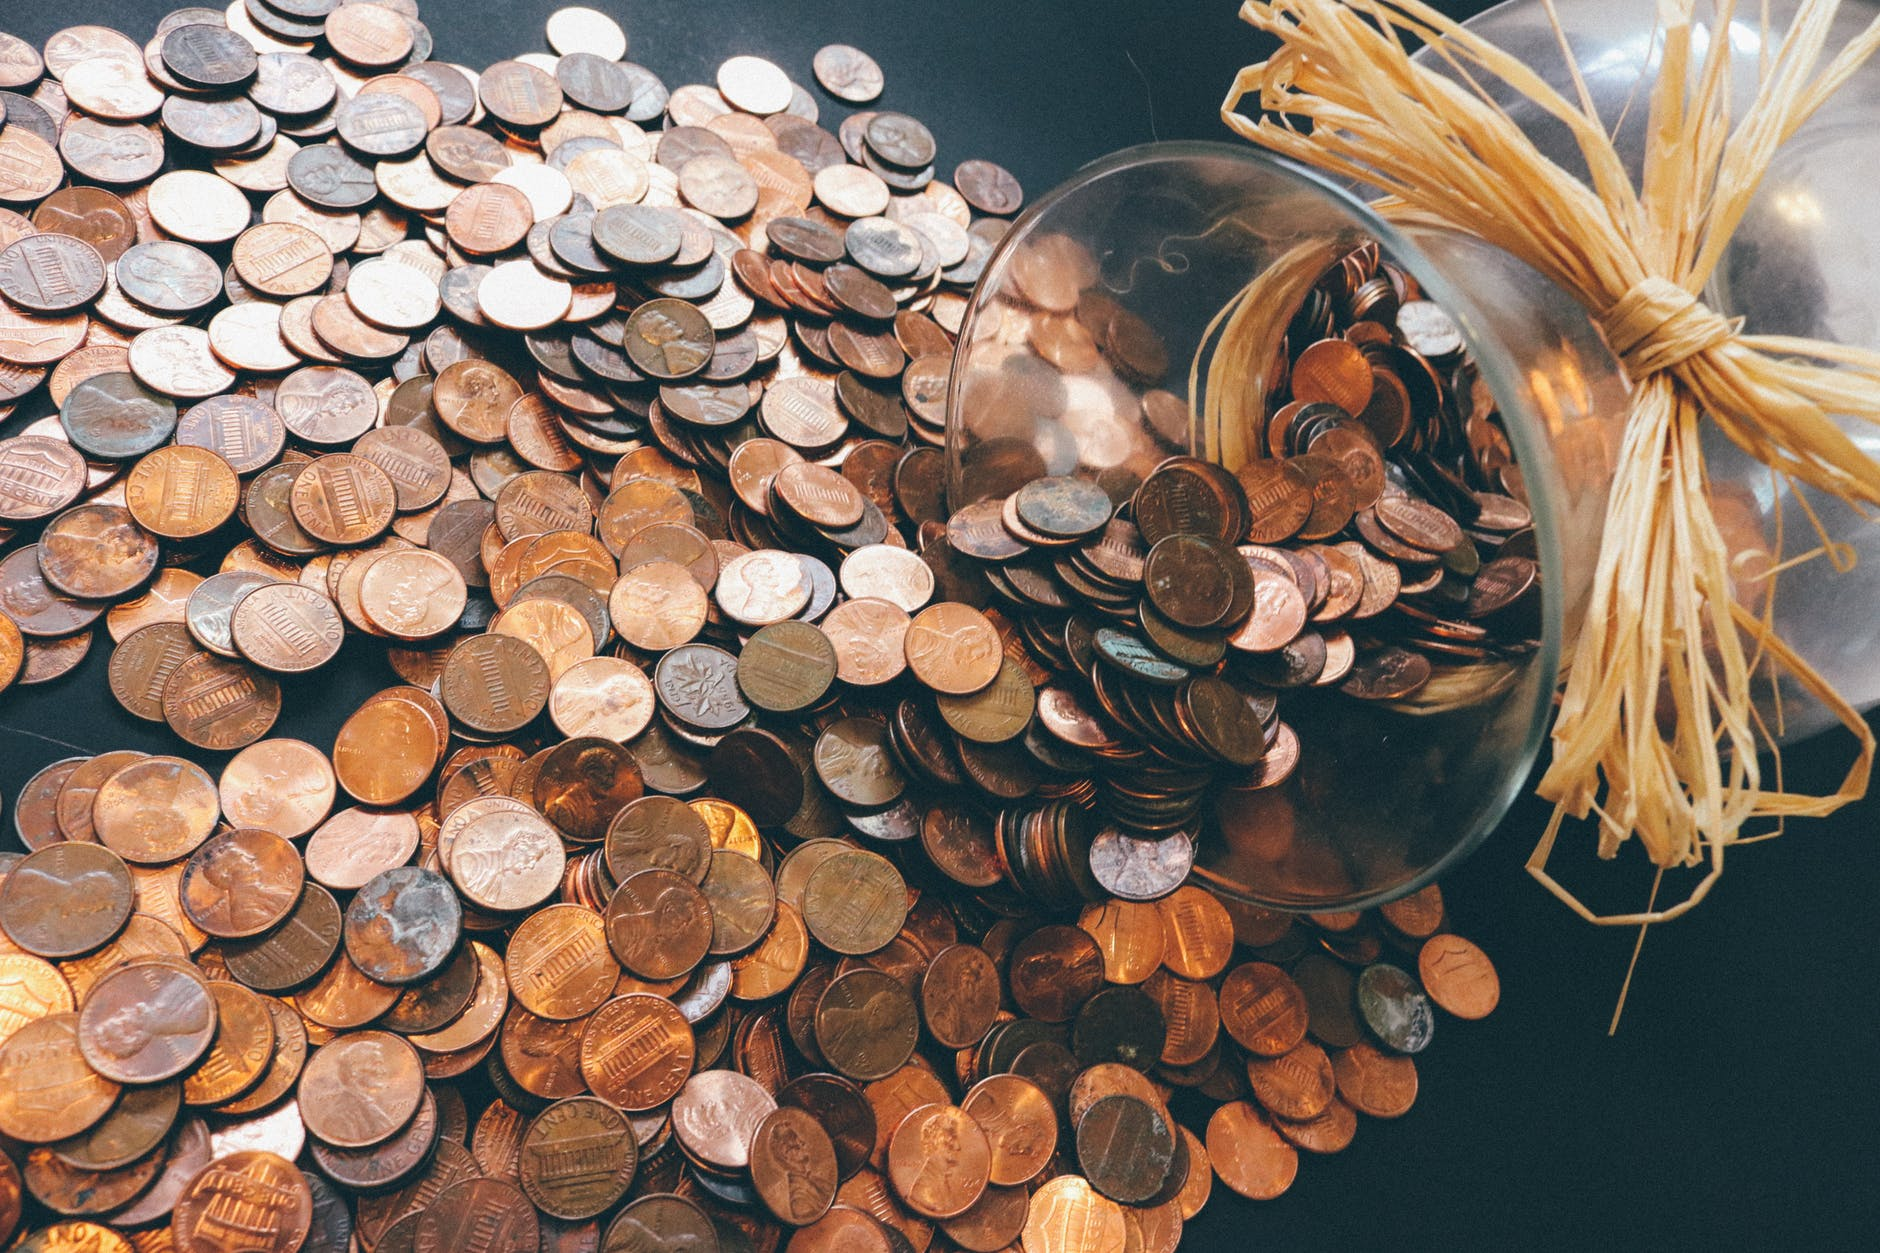 large jar of spilled pennys image - Easy accounting and annual returns with digital payments